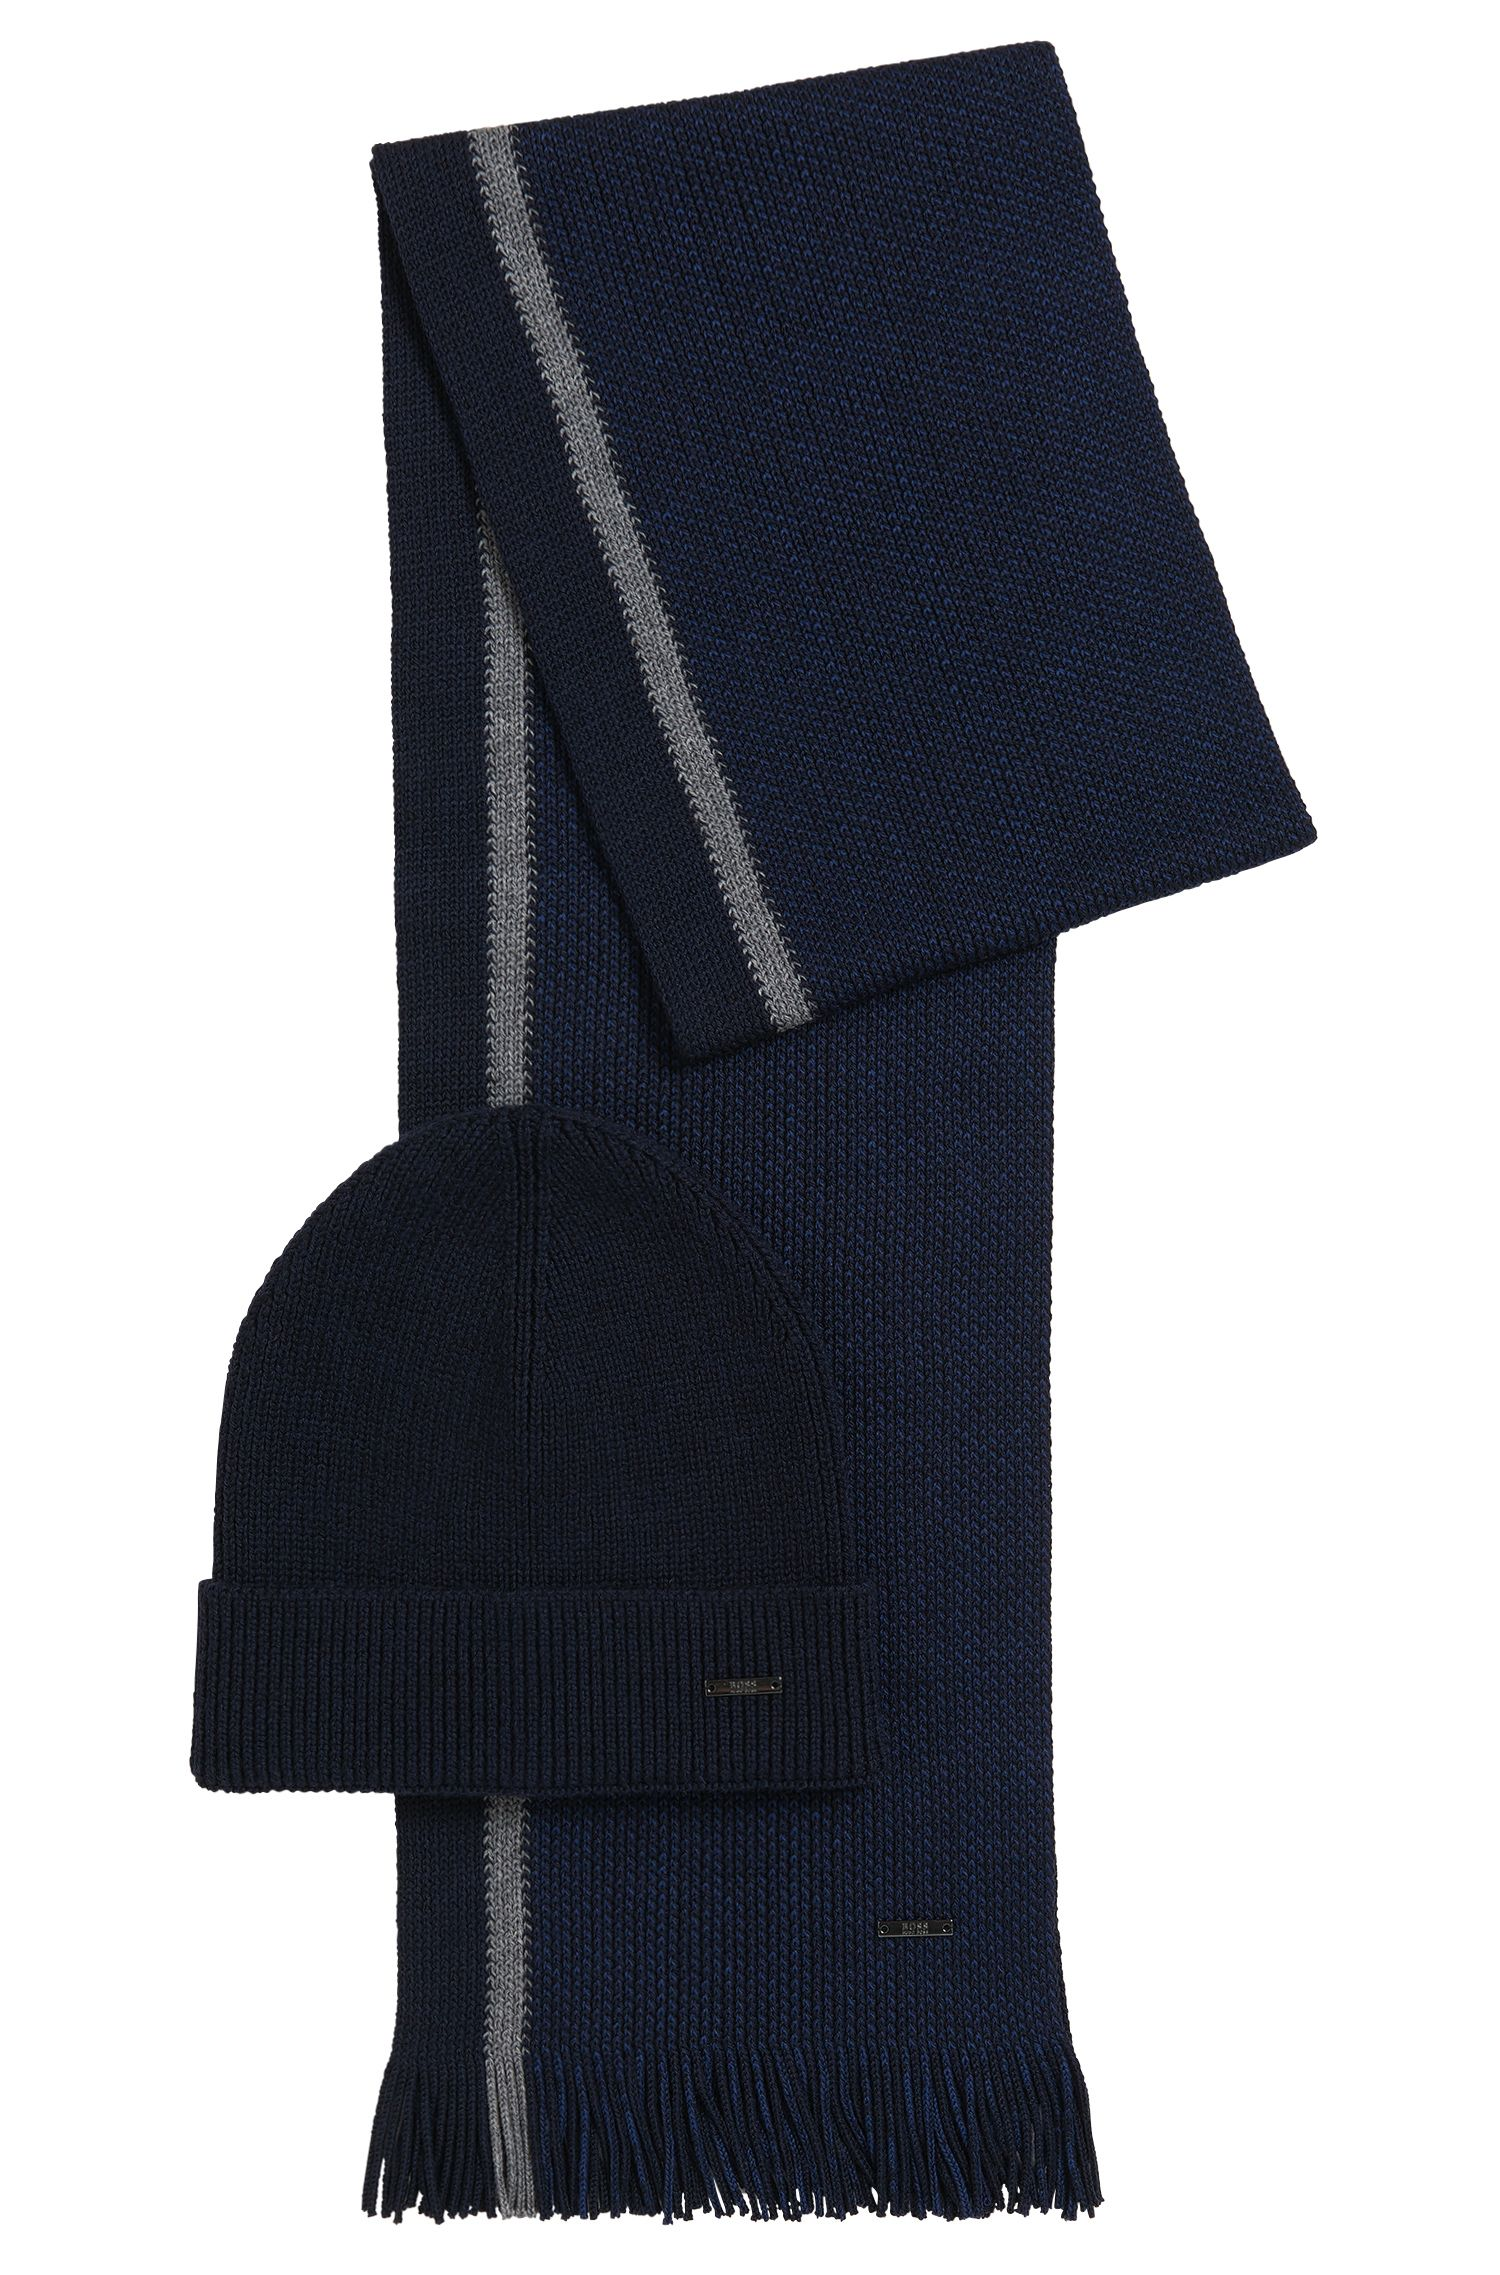 Virgin Wool Beanie & Scarf Set | Marros Set